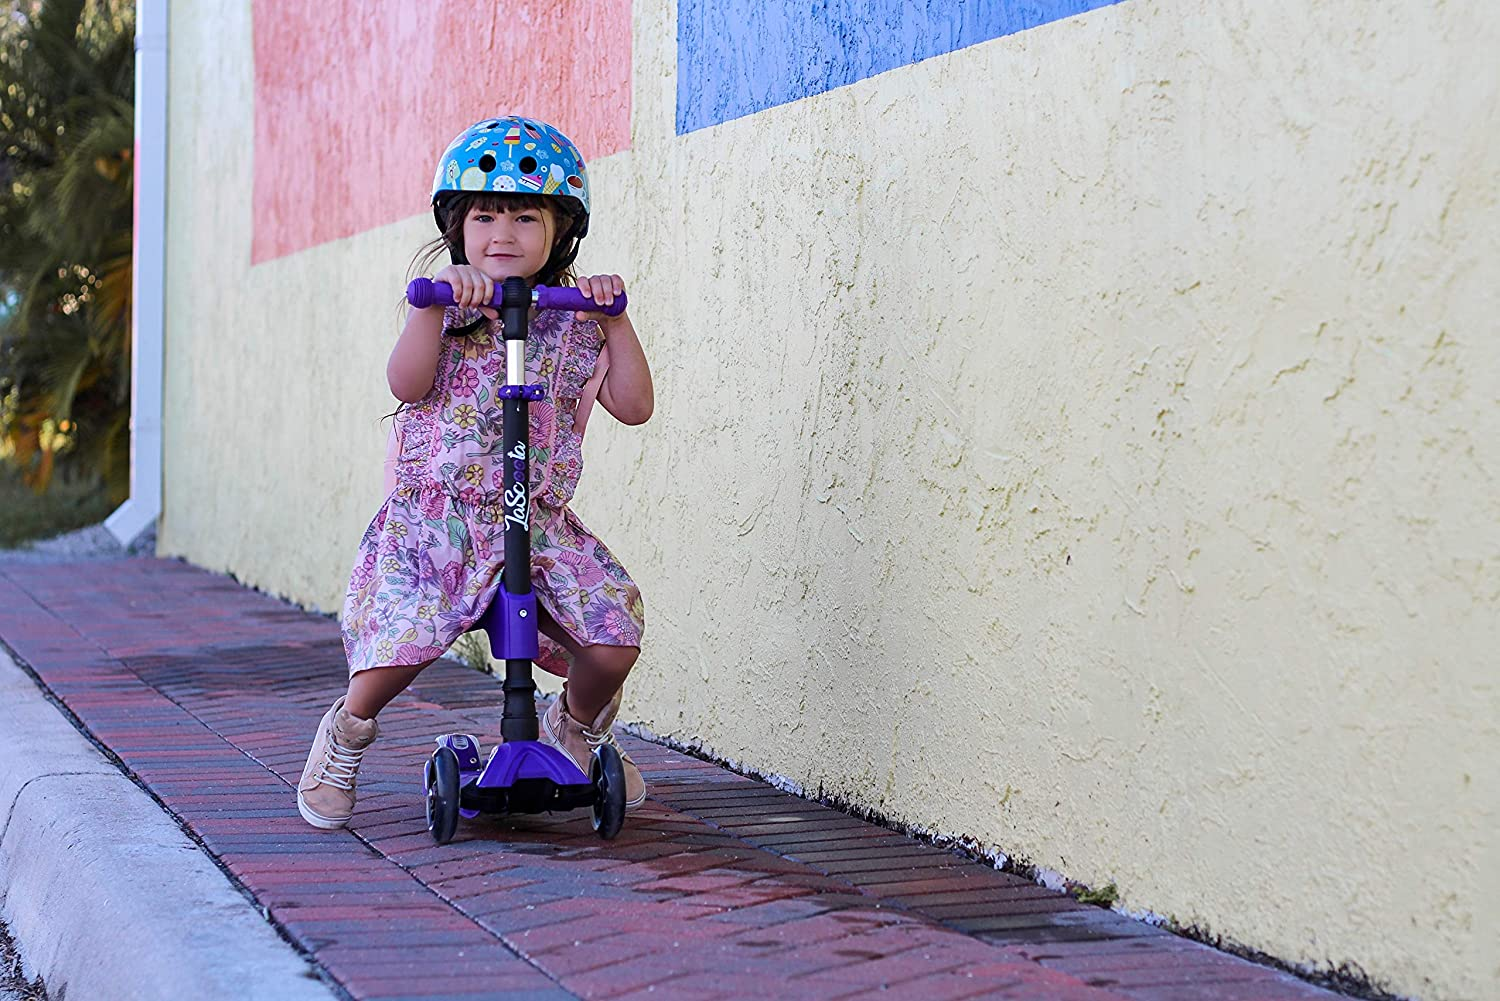 Lascoota 2-in-1 Kick Scooter with Removable Seat Great for Kids /& Toddlers Girls or Boys Adjustable Height w//Extra-Wide Deck PU Flashing Wheels for Children from 2 to 14 Year-Old